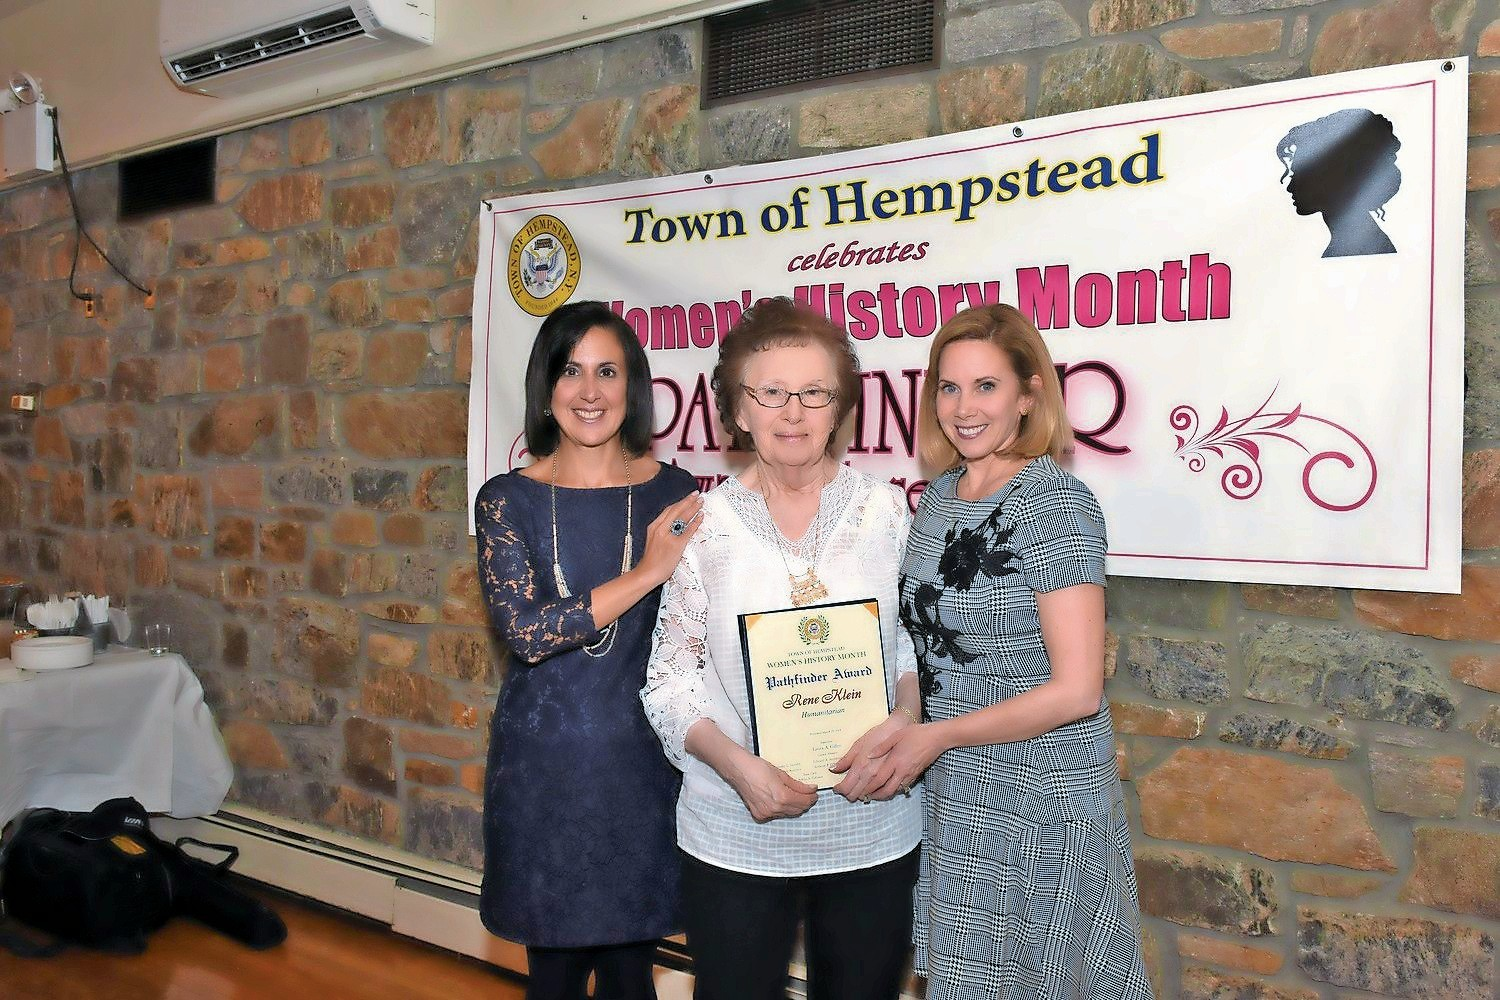 Klein, 81, spends most of the year walking from business to business, collecting donations for her annual event, which supports local charities. Above, she received the Humanitarian Pathfinder Award by Town of Hempstead Supervisor Laura Gillen, right, and Town Clerk Sylvia Cabana.